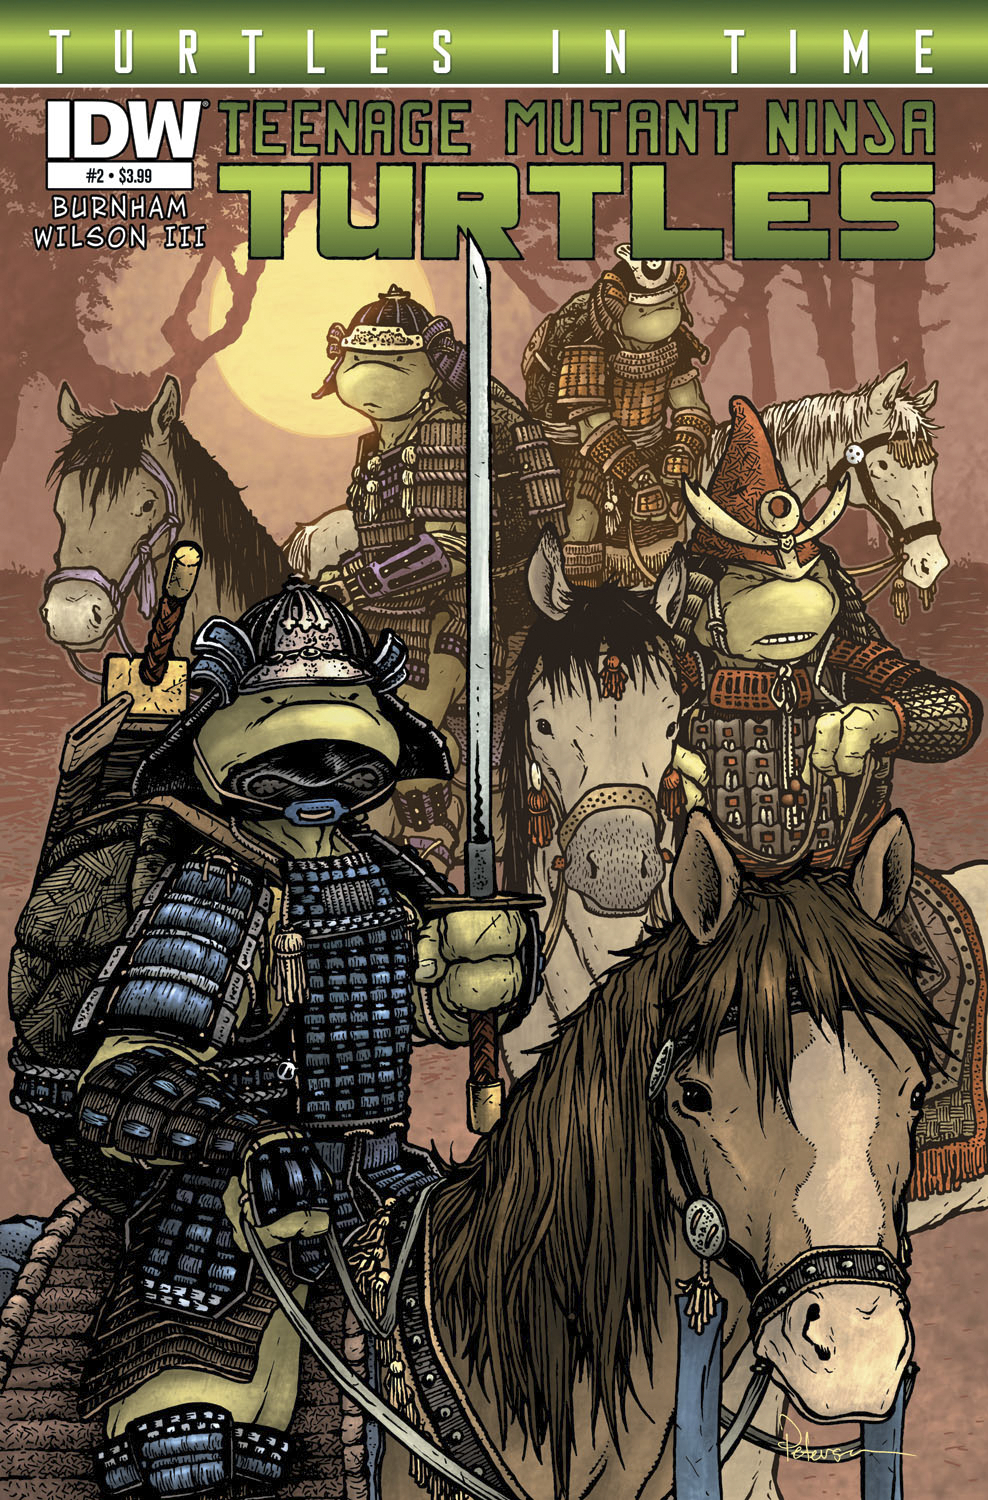 TMNT TURTLES IN TIME #2